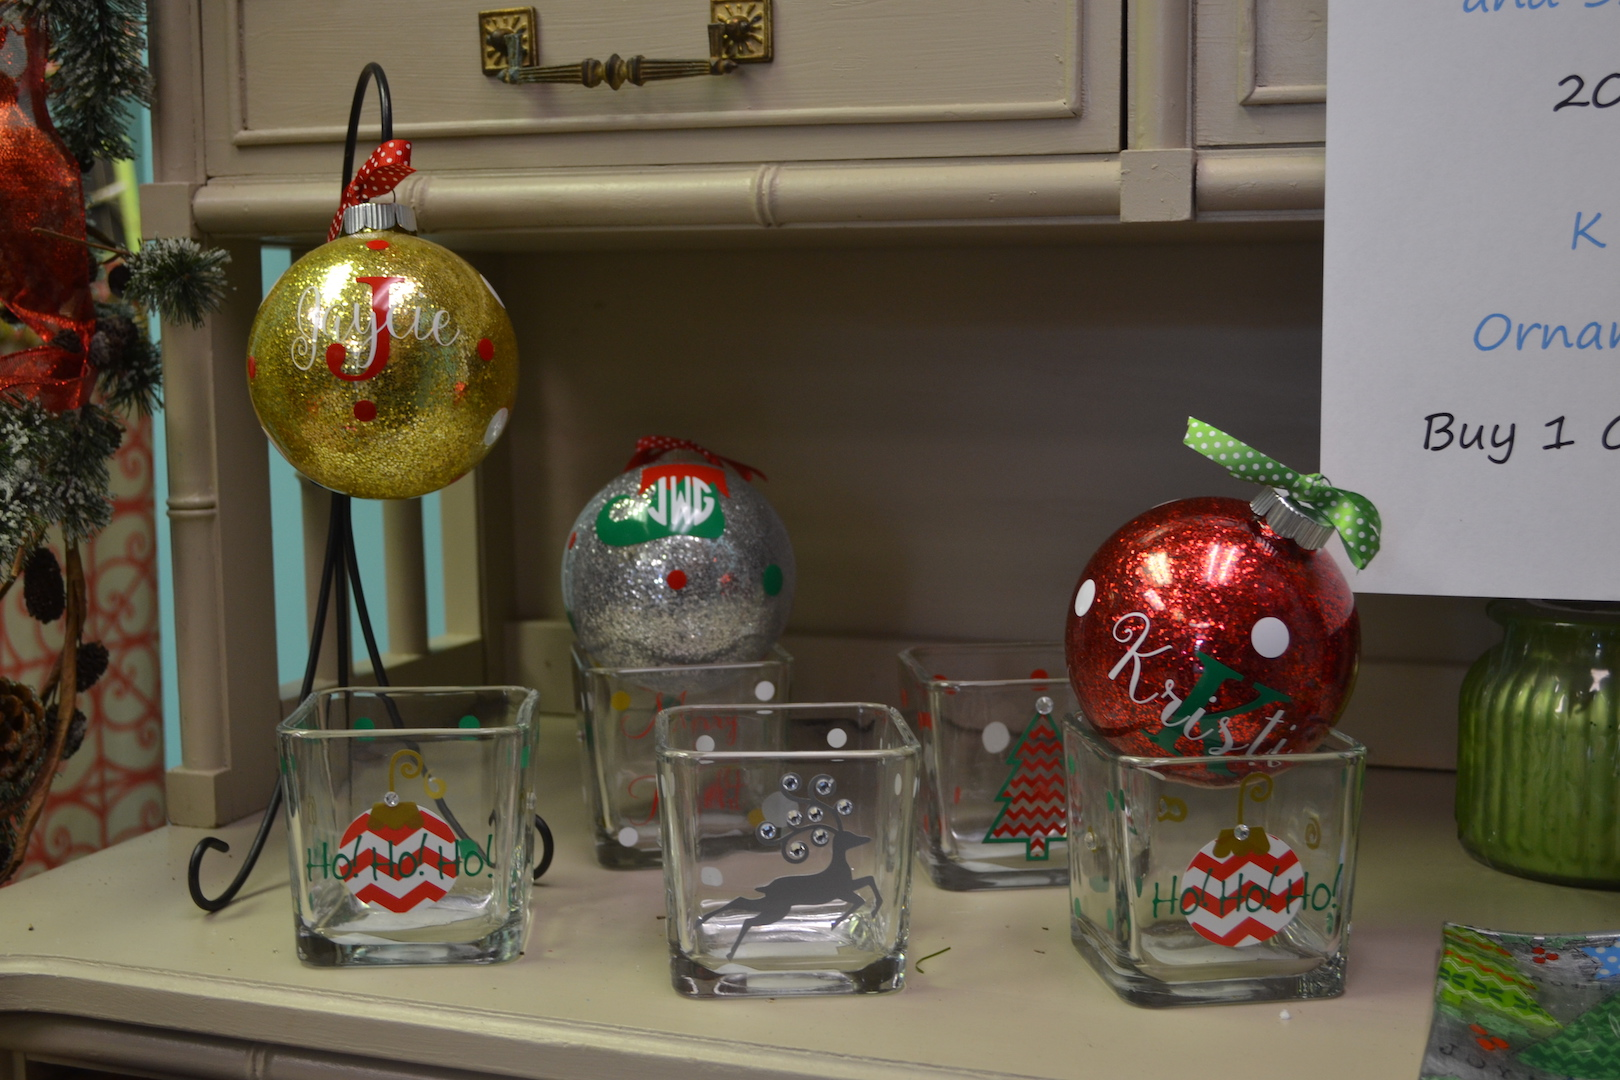 Local businesses offer unique holiday gifts